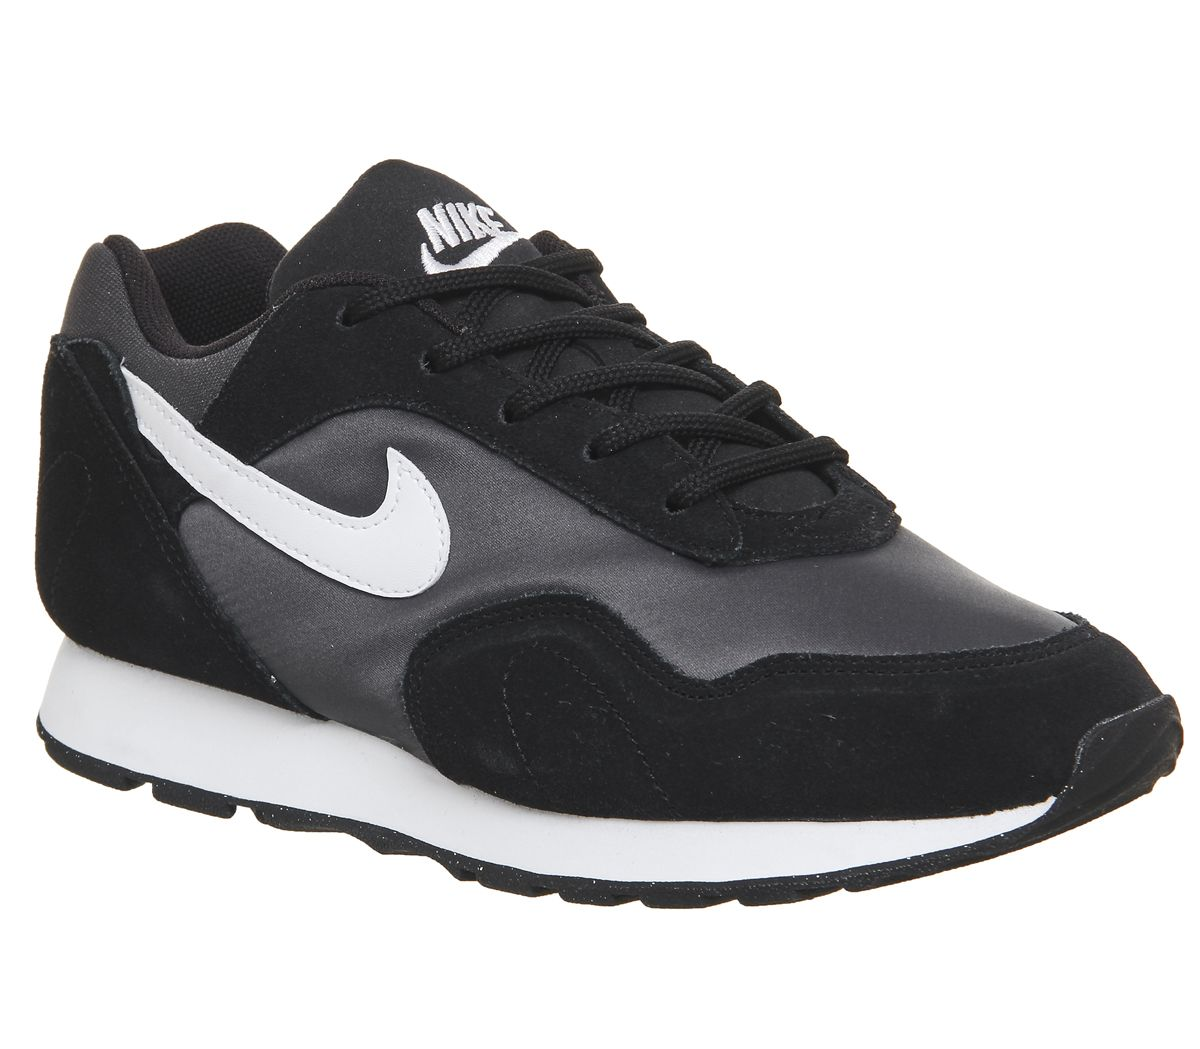 half off ce5c8 65b14 Nike Outburst Trainers Black White - Hers trainers